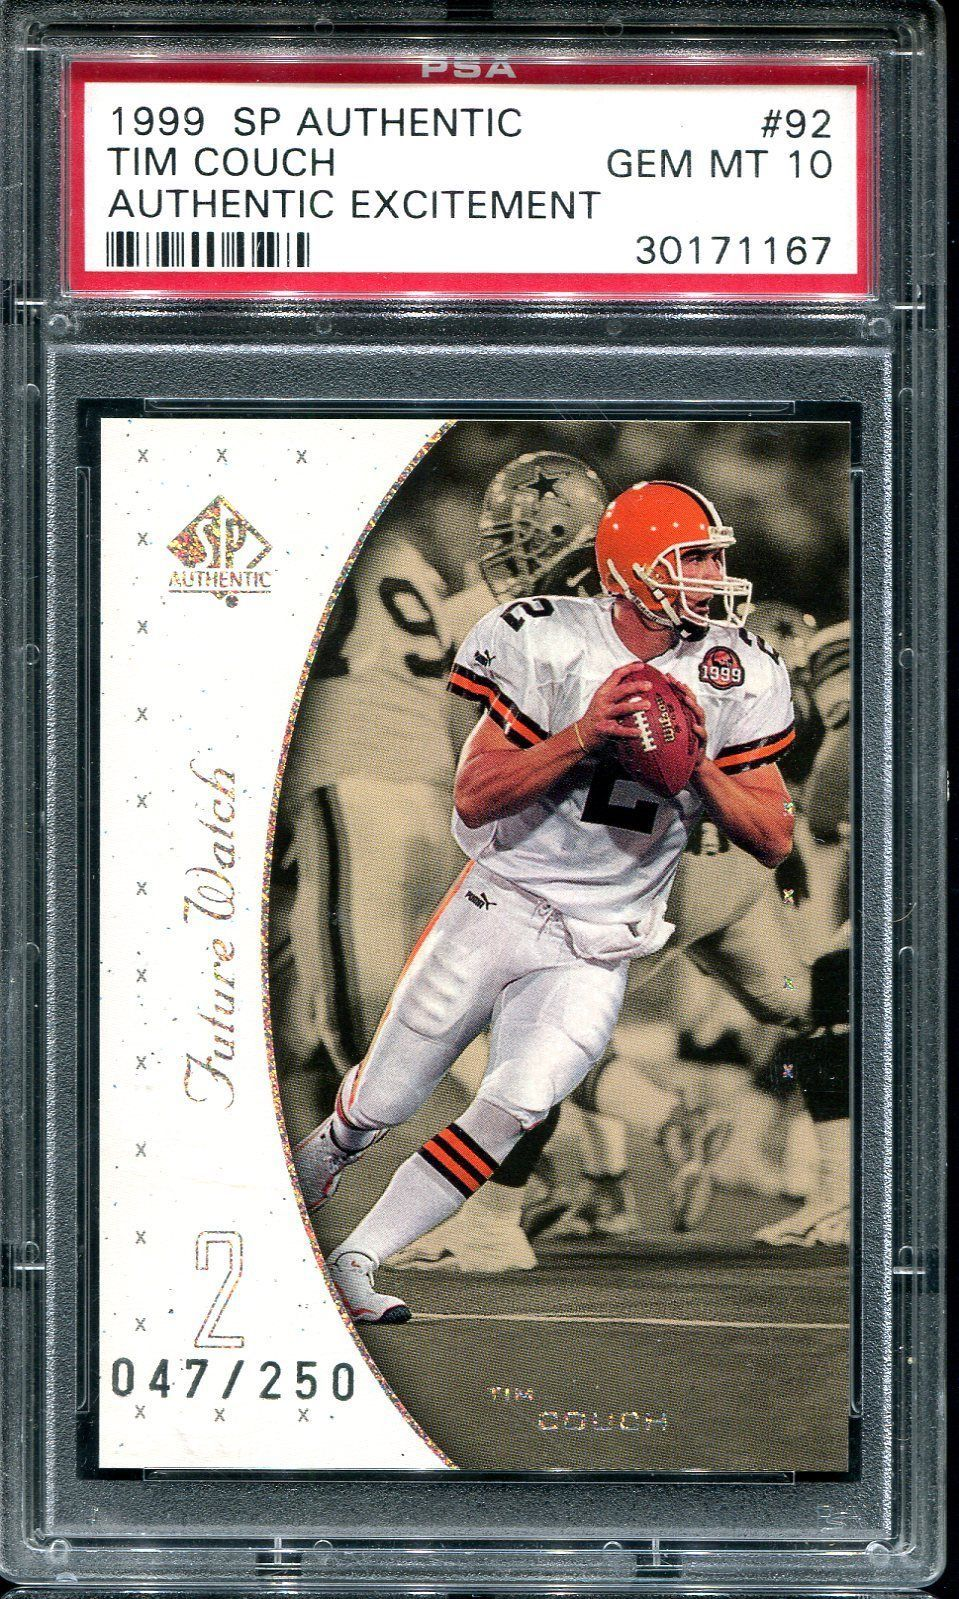 TIM COUCH 1999 SP AUTHENTIC EXCITEMENT 92 ROOKIE CARD RC